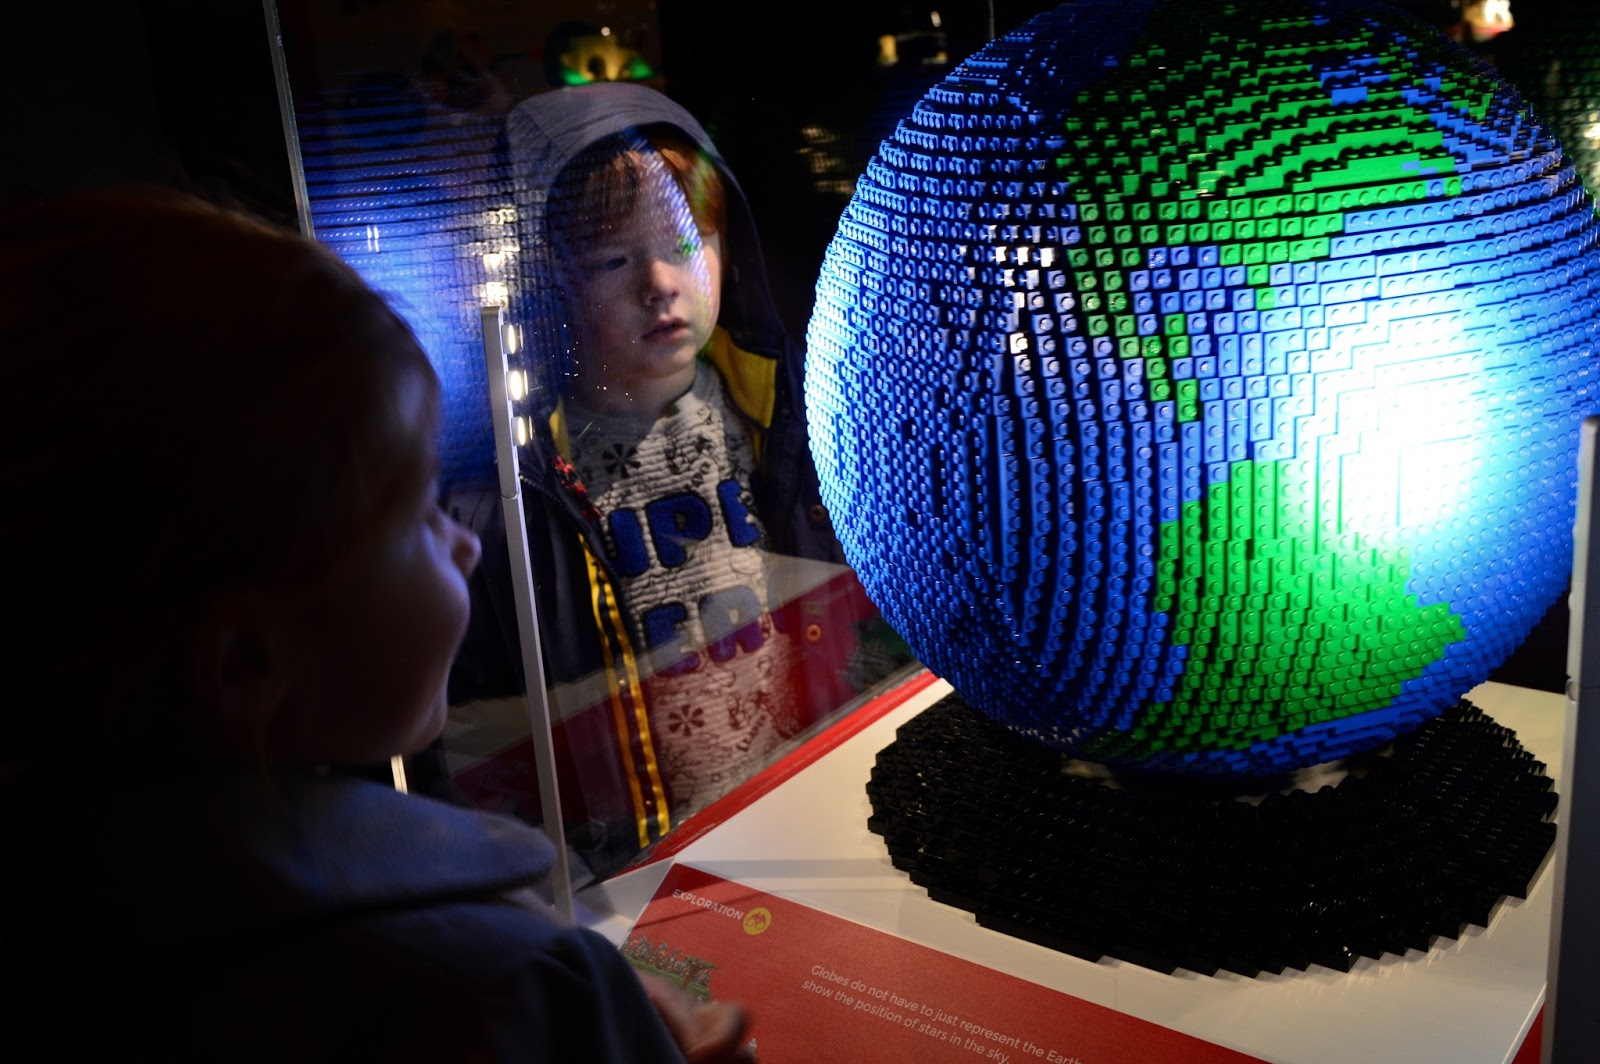 Brick History & North East Landmarks | New Lego Exhibitions at Life Science Centre, Newcastle | A Review - a spinning lego globe